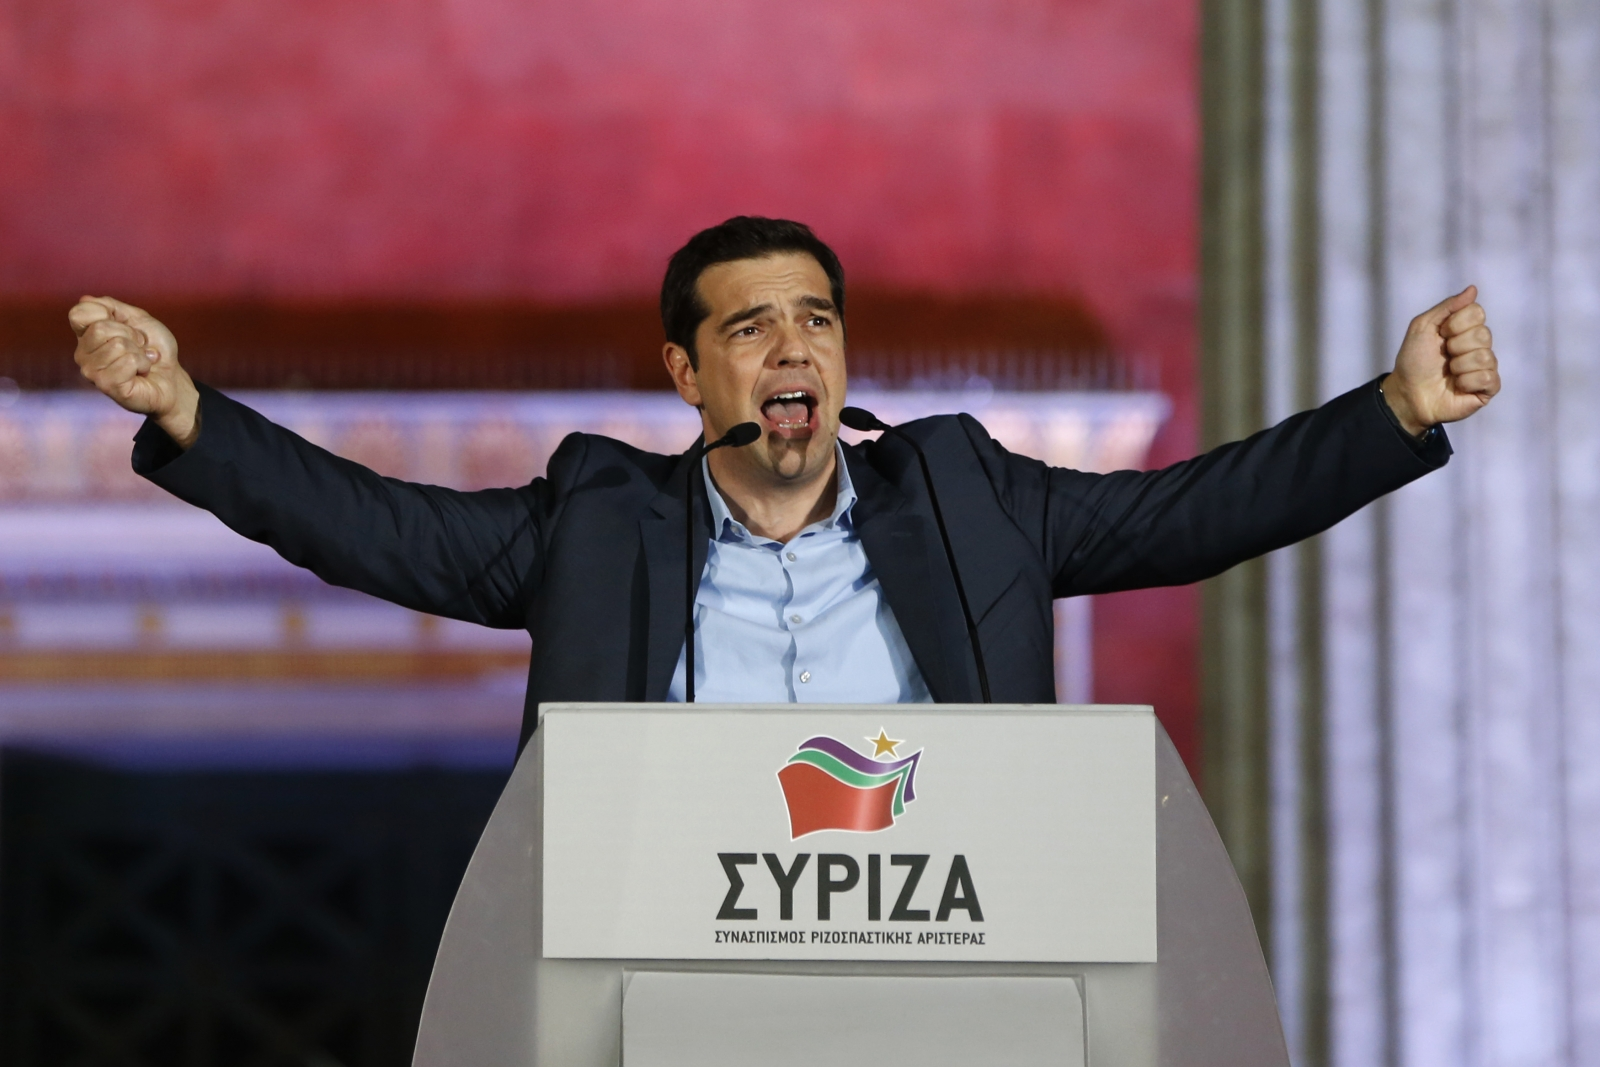 The head of radical leftist Syriza party Alexis Tsipras speaks to supporters after winning the elections in Athens